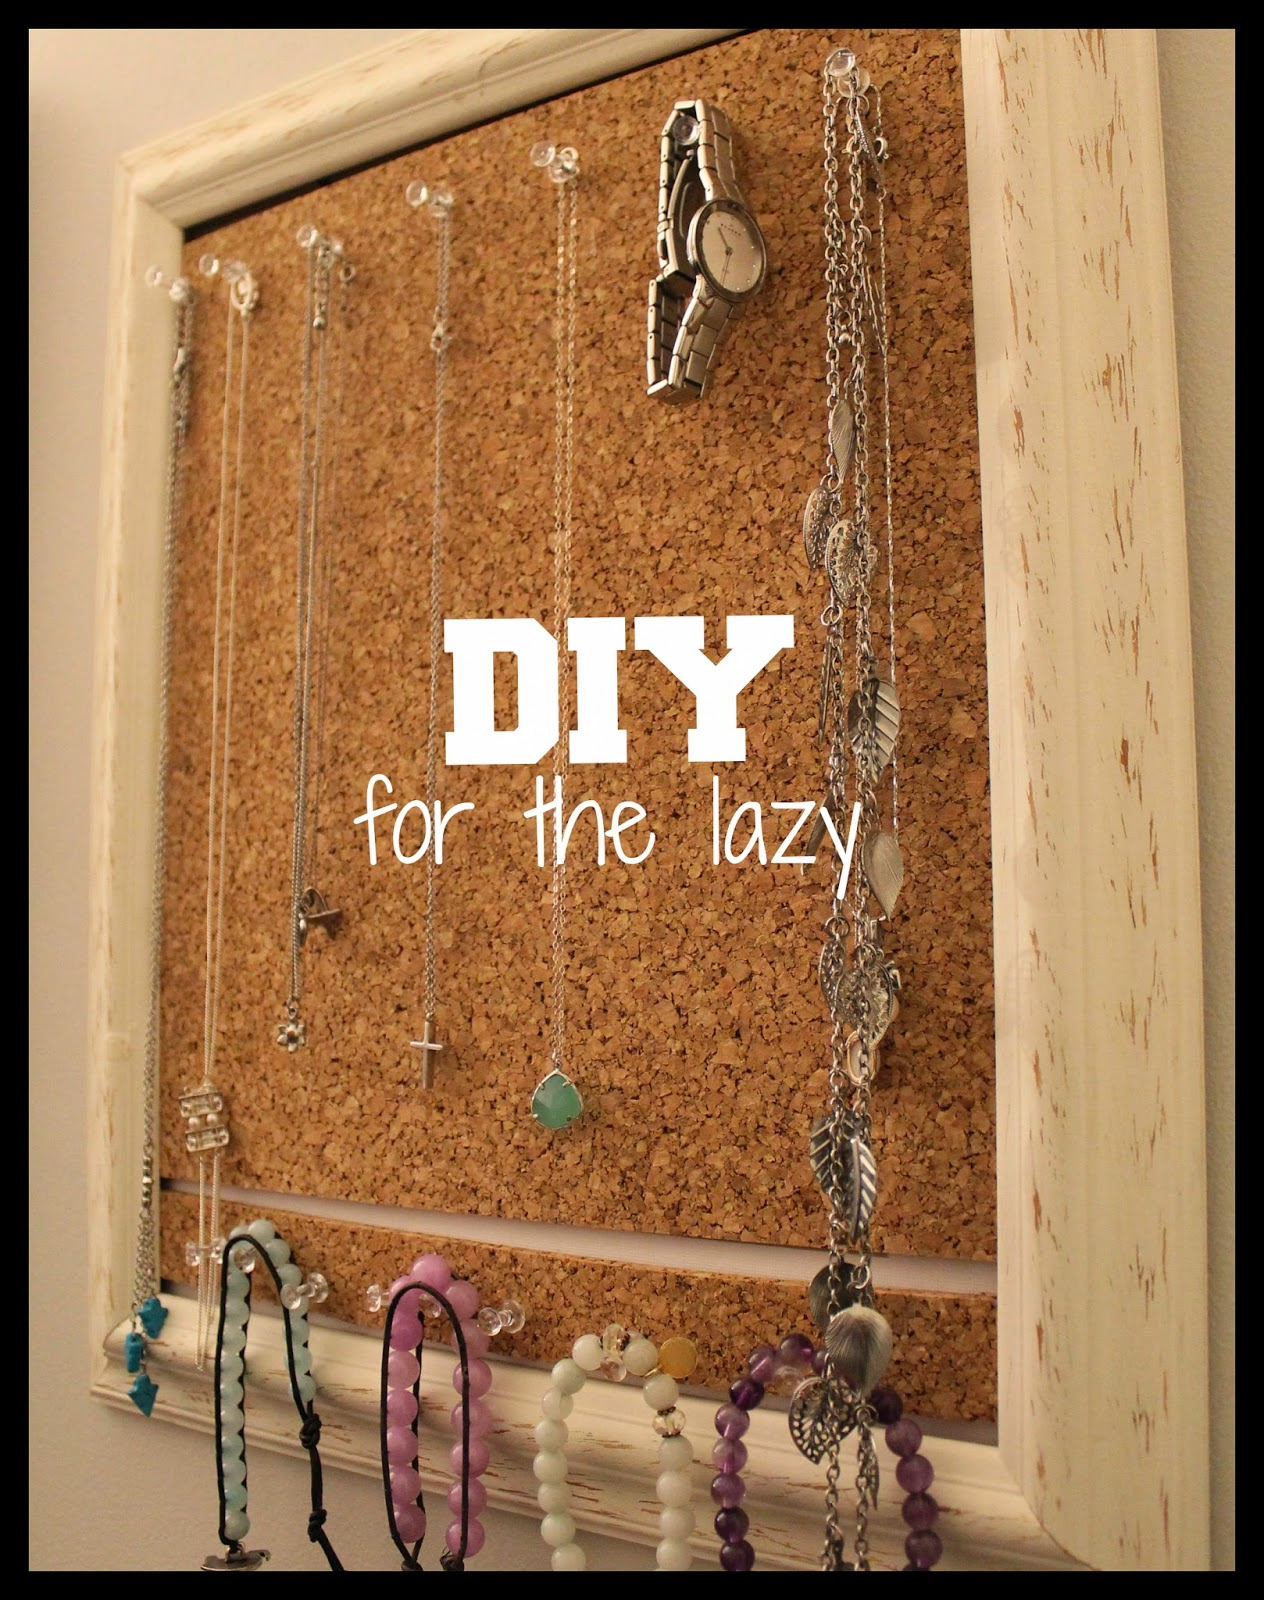 In between life june 2014 i want to share a sort of diy crafty thing i recently did that i thought was super easy cute and most importantly useful solutioingenieria Images